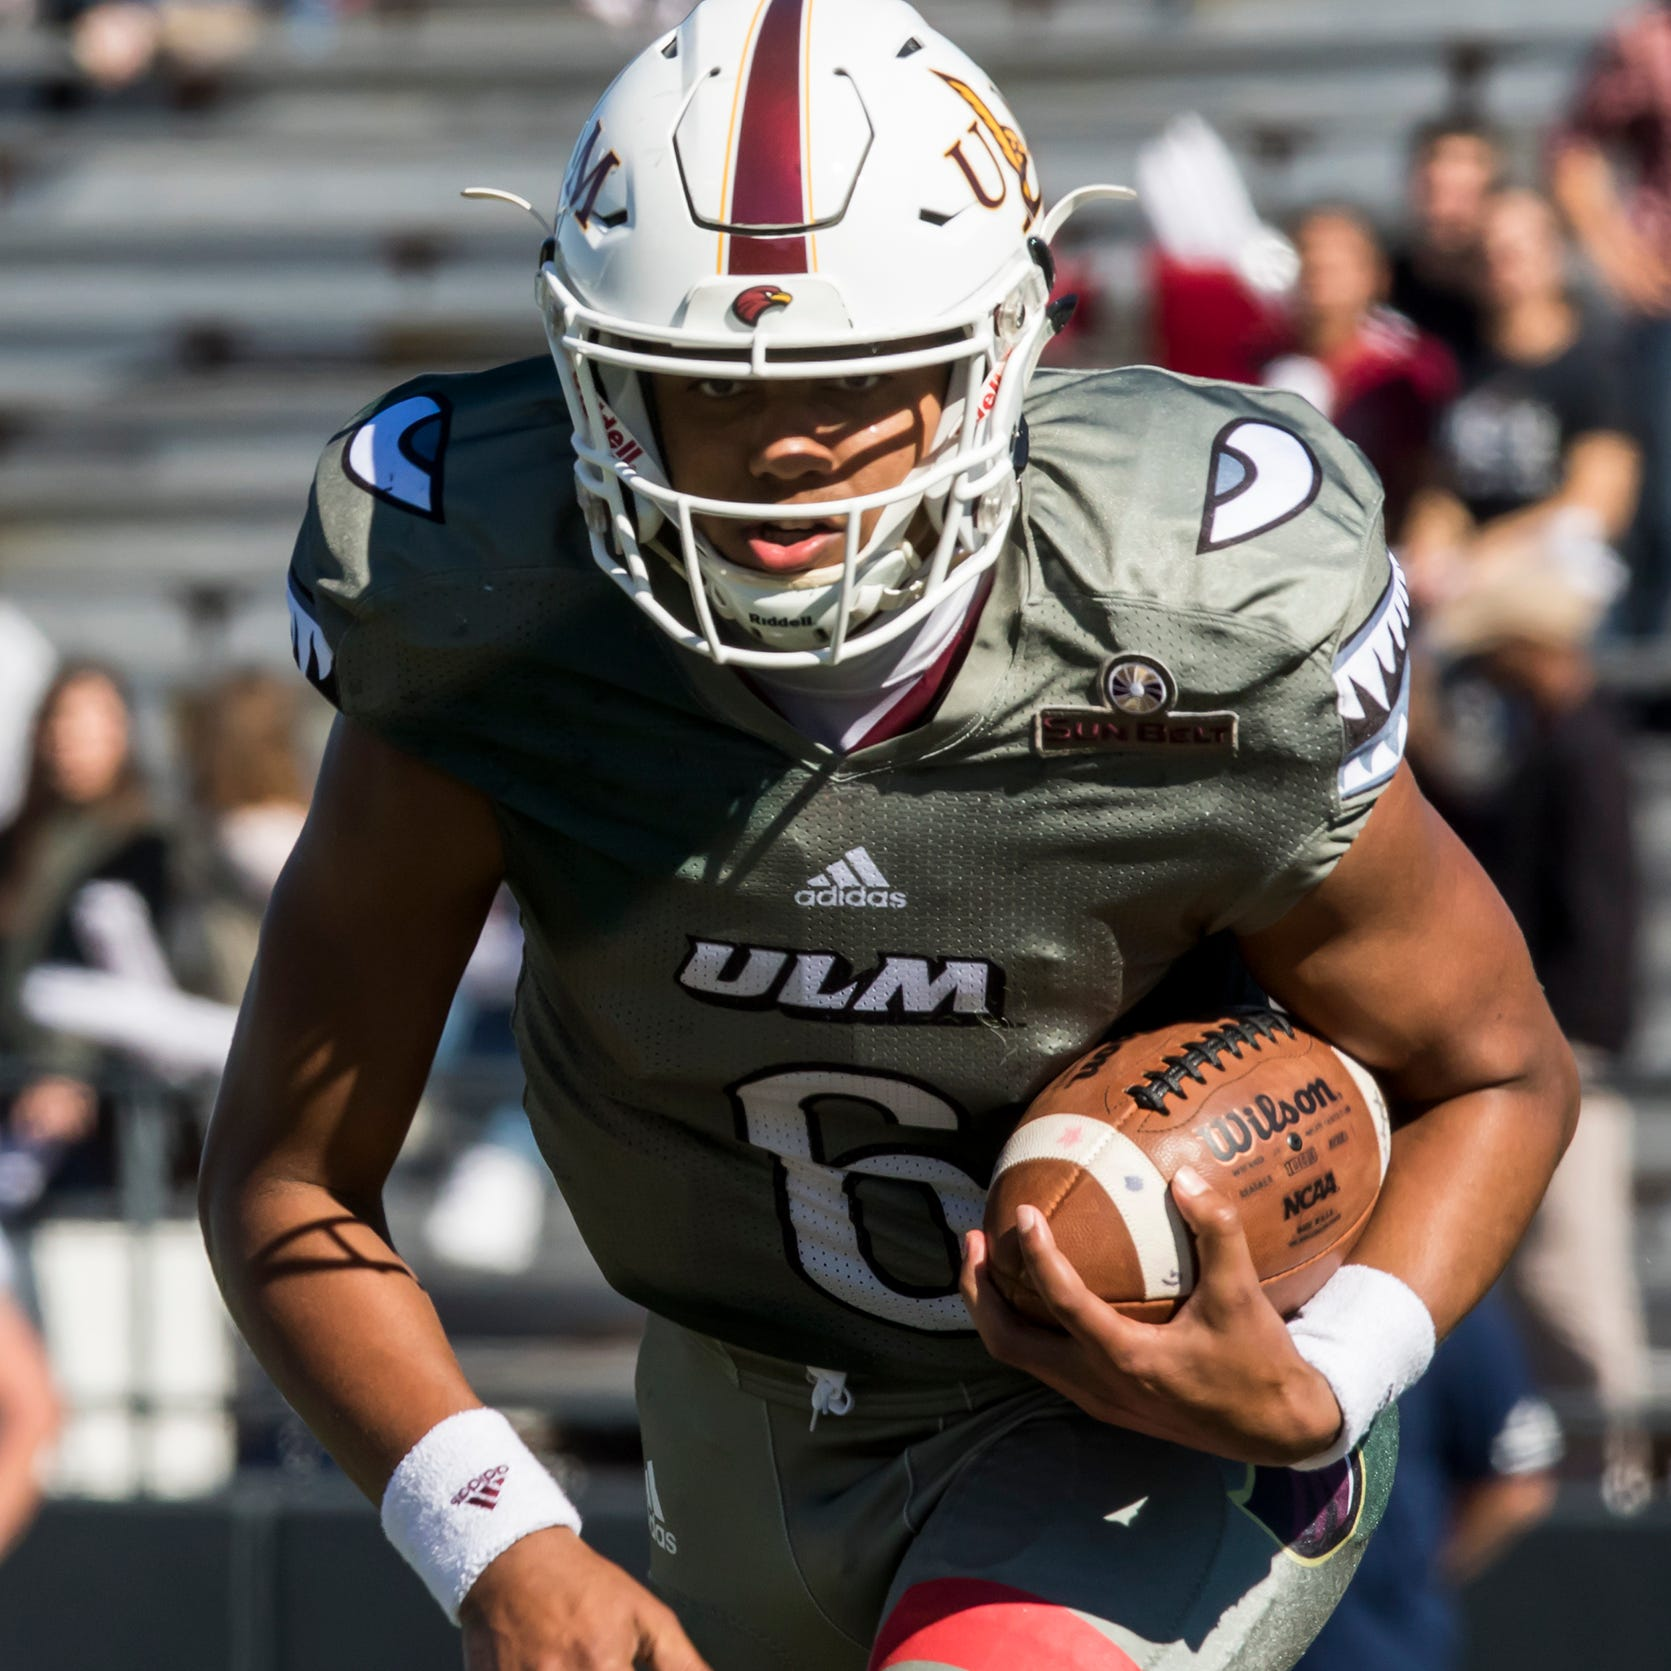 University of Louisiana at Monroe quarterback Caleb Evans (6) carries the ball during the game against Georgia Southern University at Malone Stadium in Monroe, La. on Nov. 3.